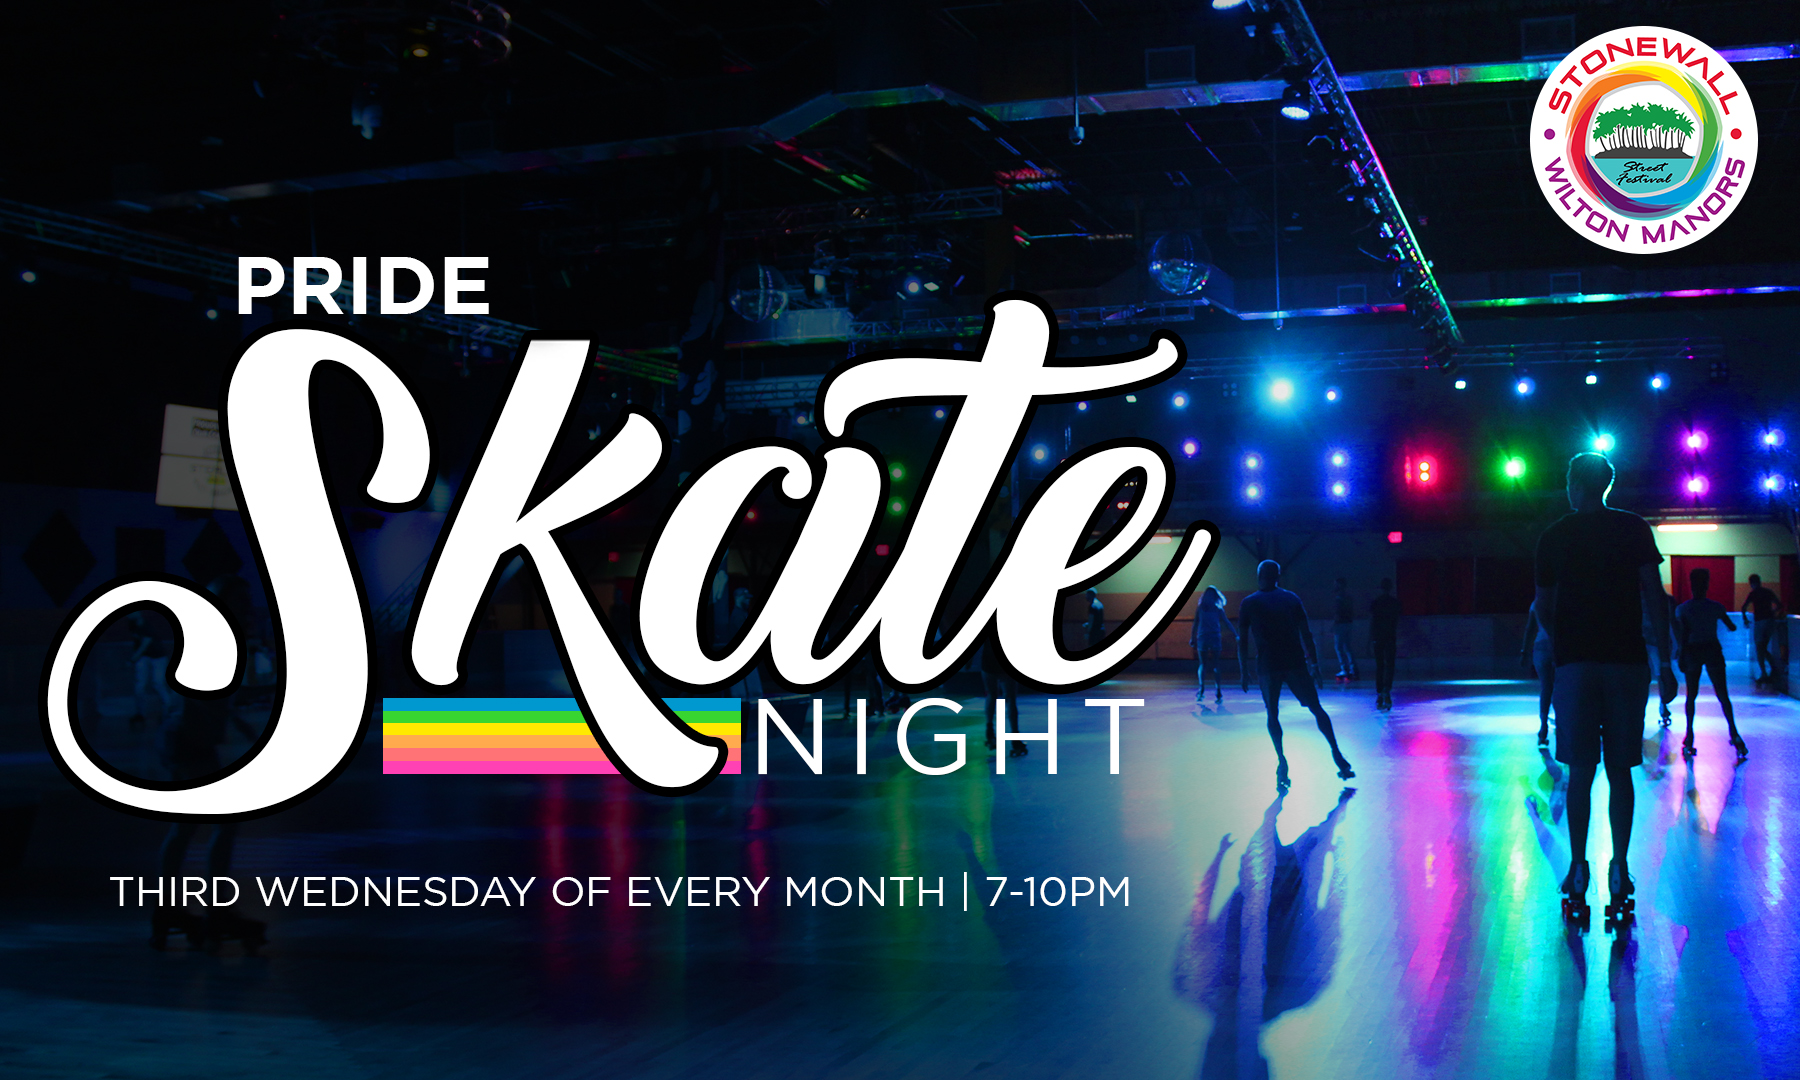 Pride Skate Nights